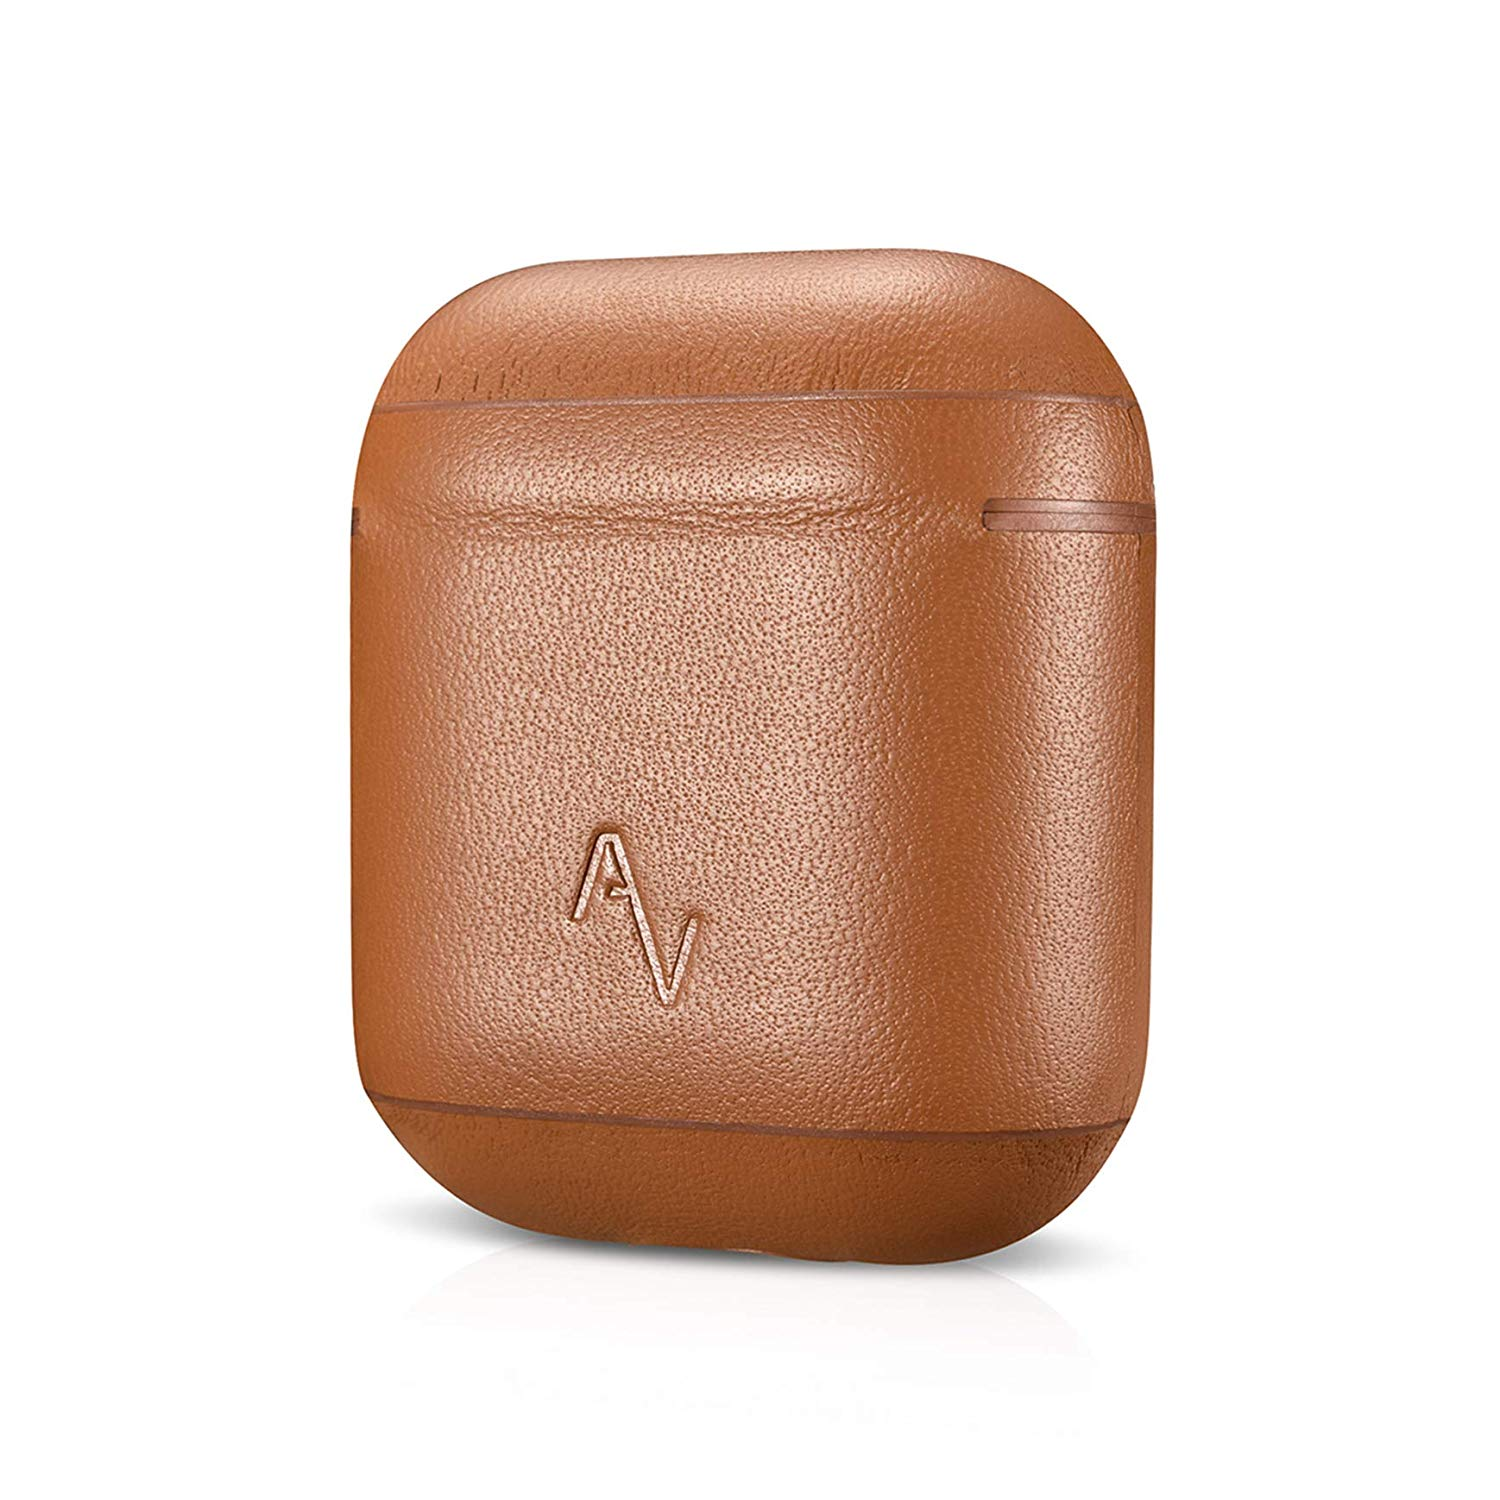 Leather Apple AirPods Case 2